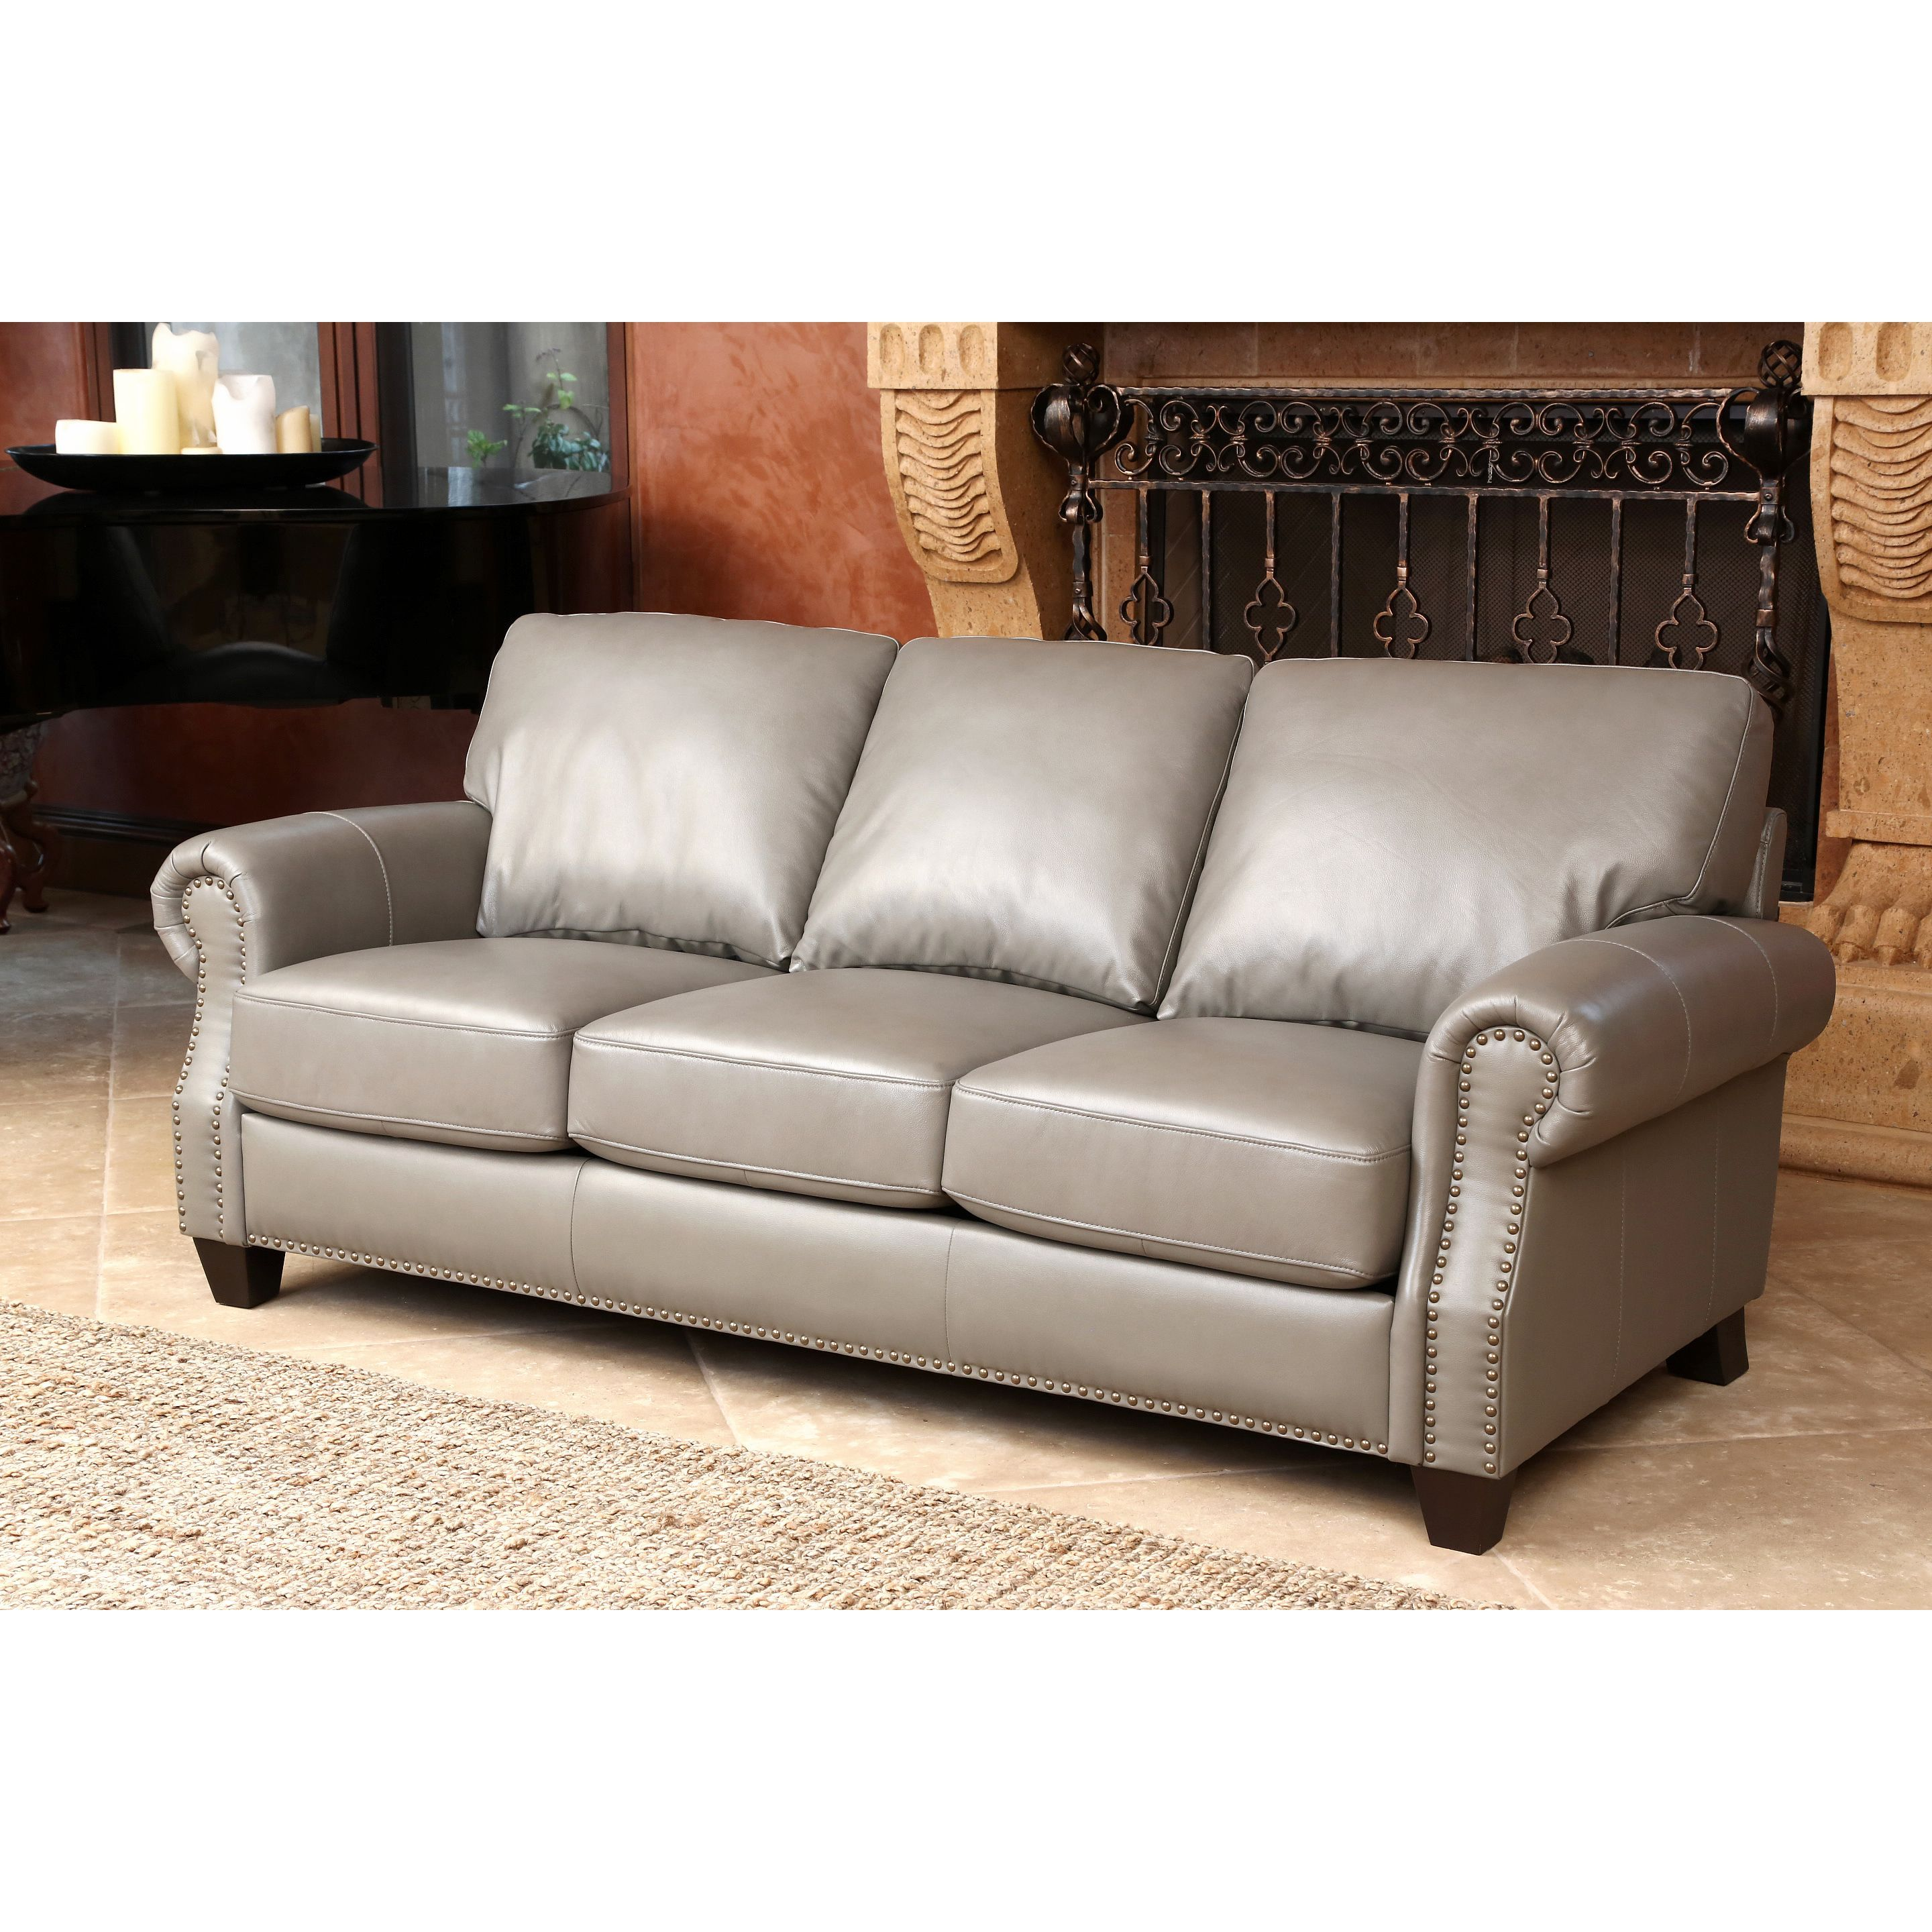 Outstanding Grey Top Grain Leather Gives This Abbyson Living Landon Sofa Theyellowbook Wood Chair Design Ideas Theyellowbookinfo